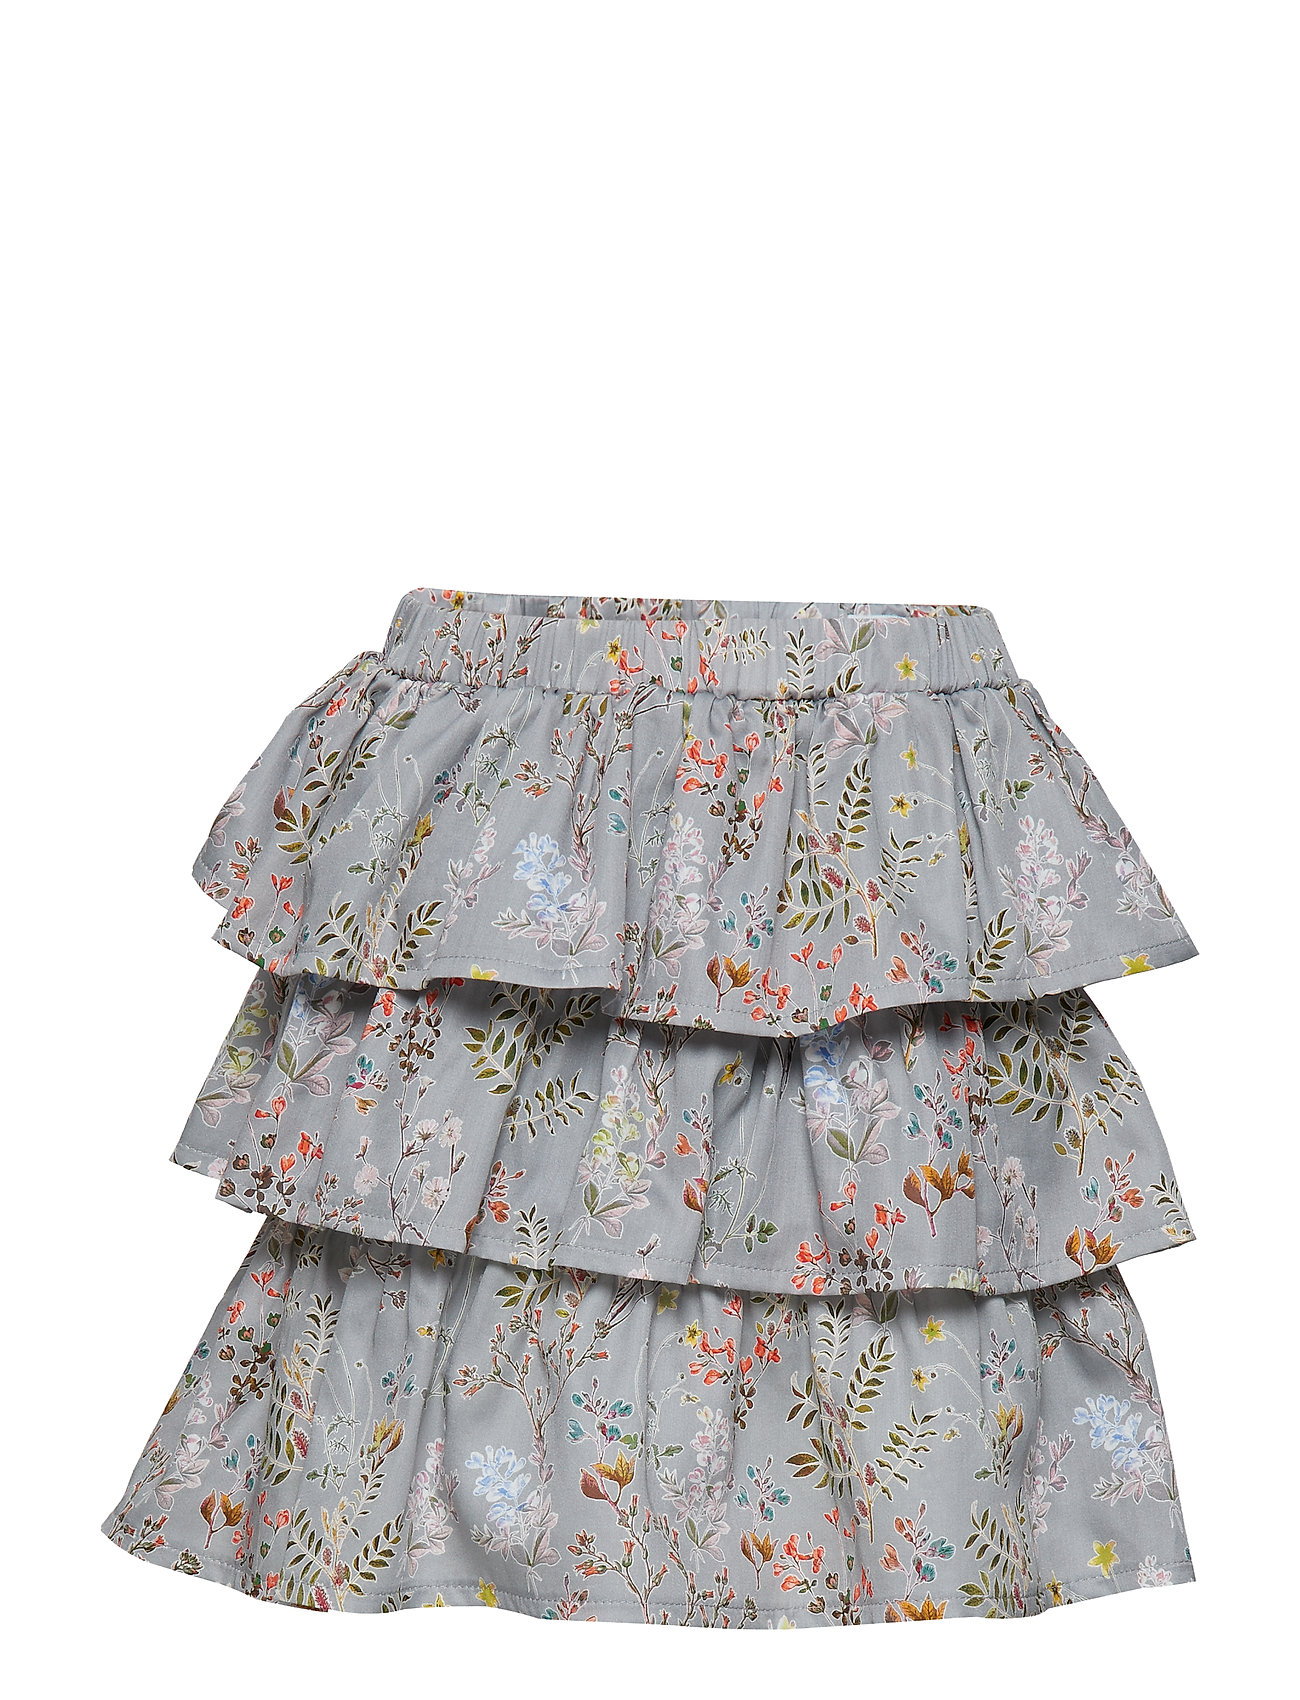 Christina Rohde Skirt No. 203 - GREY MULTI FLOWER